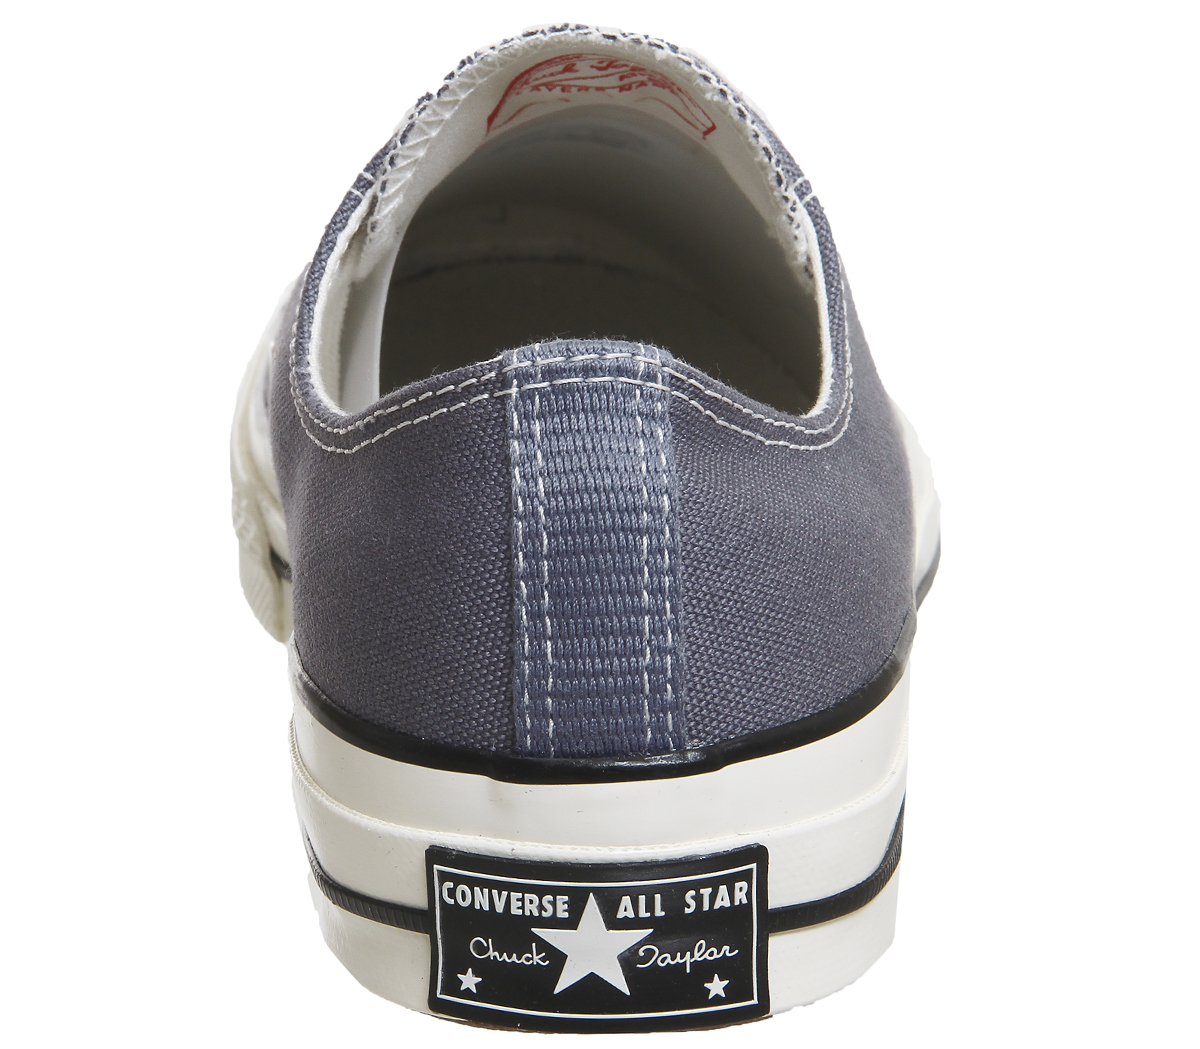 9695153a2842 Converse All Star Ox 70 S Light Carbon Black Trainers Shoes